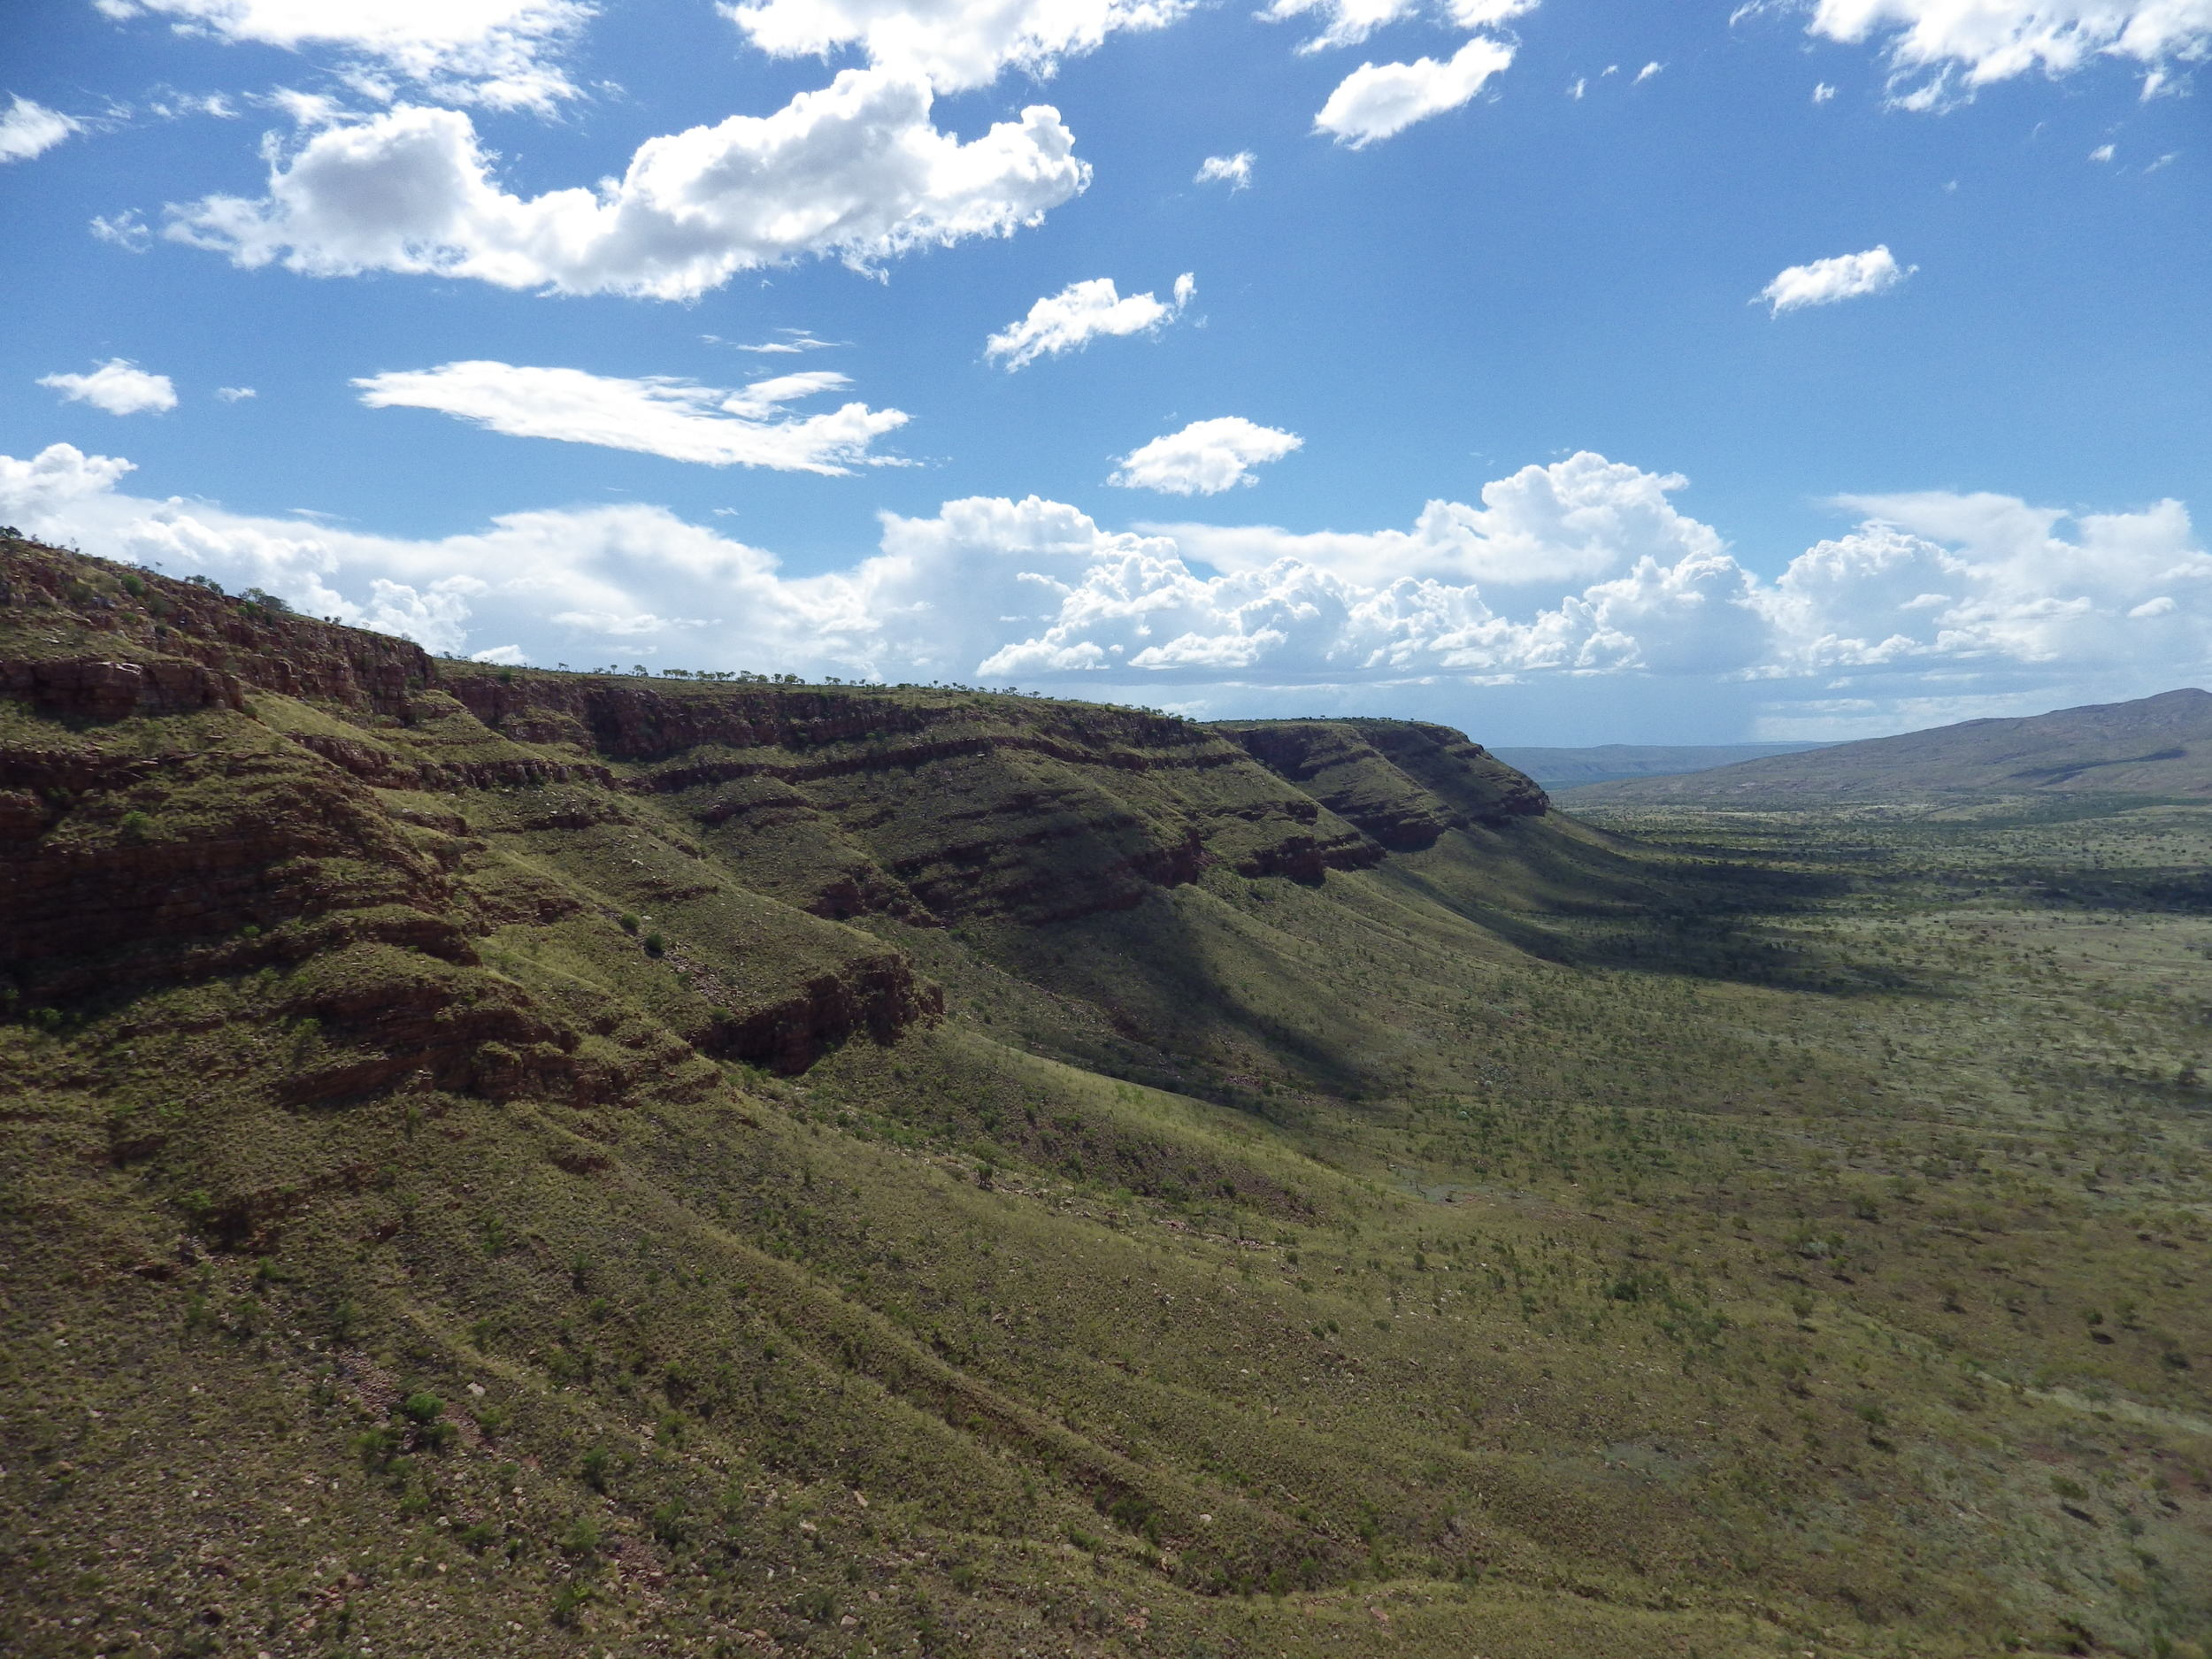 The captivating landscape of Mornington Sanctuary in the Kimberley: an immense nature reserve in north-west Western Australia.  Image: Alex Mullarky